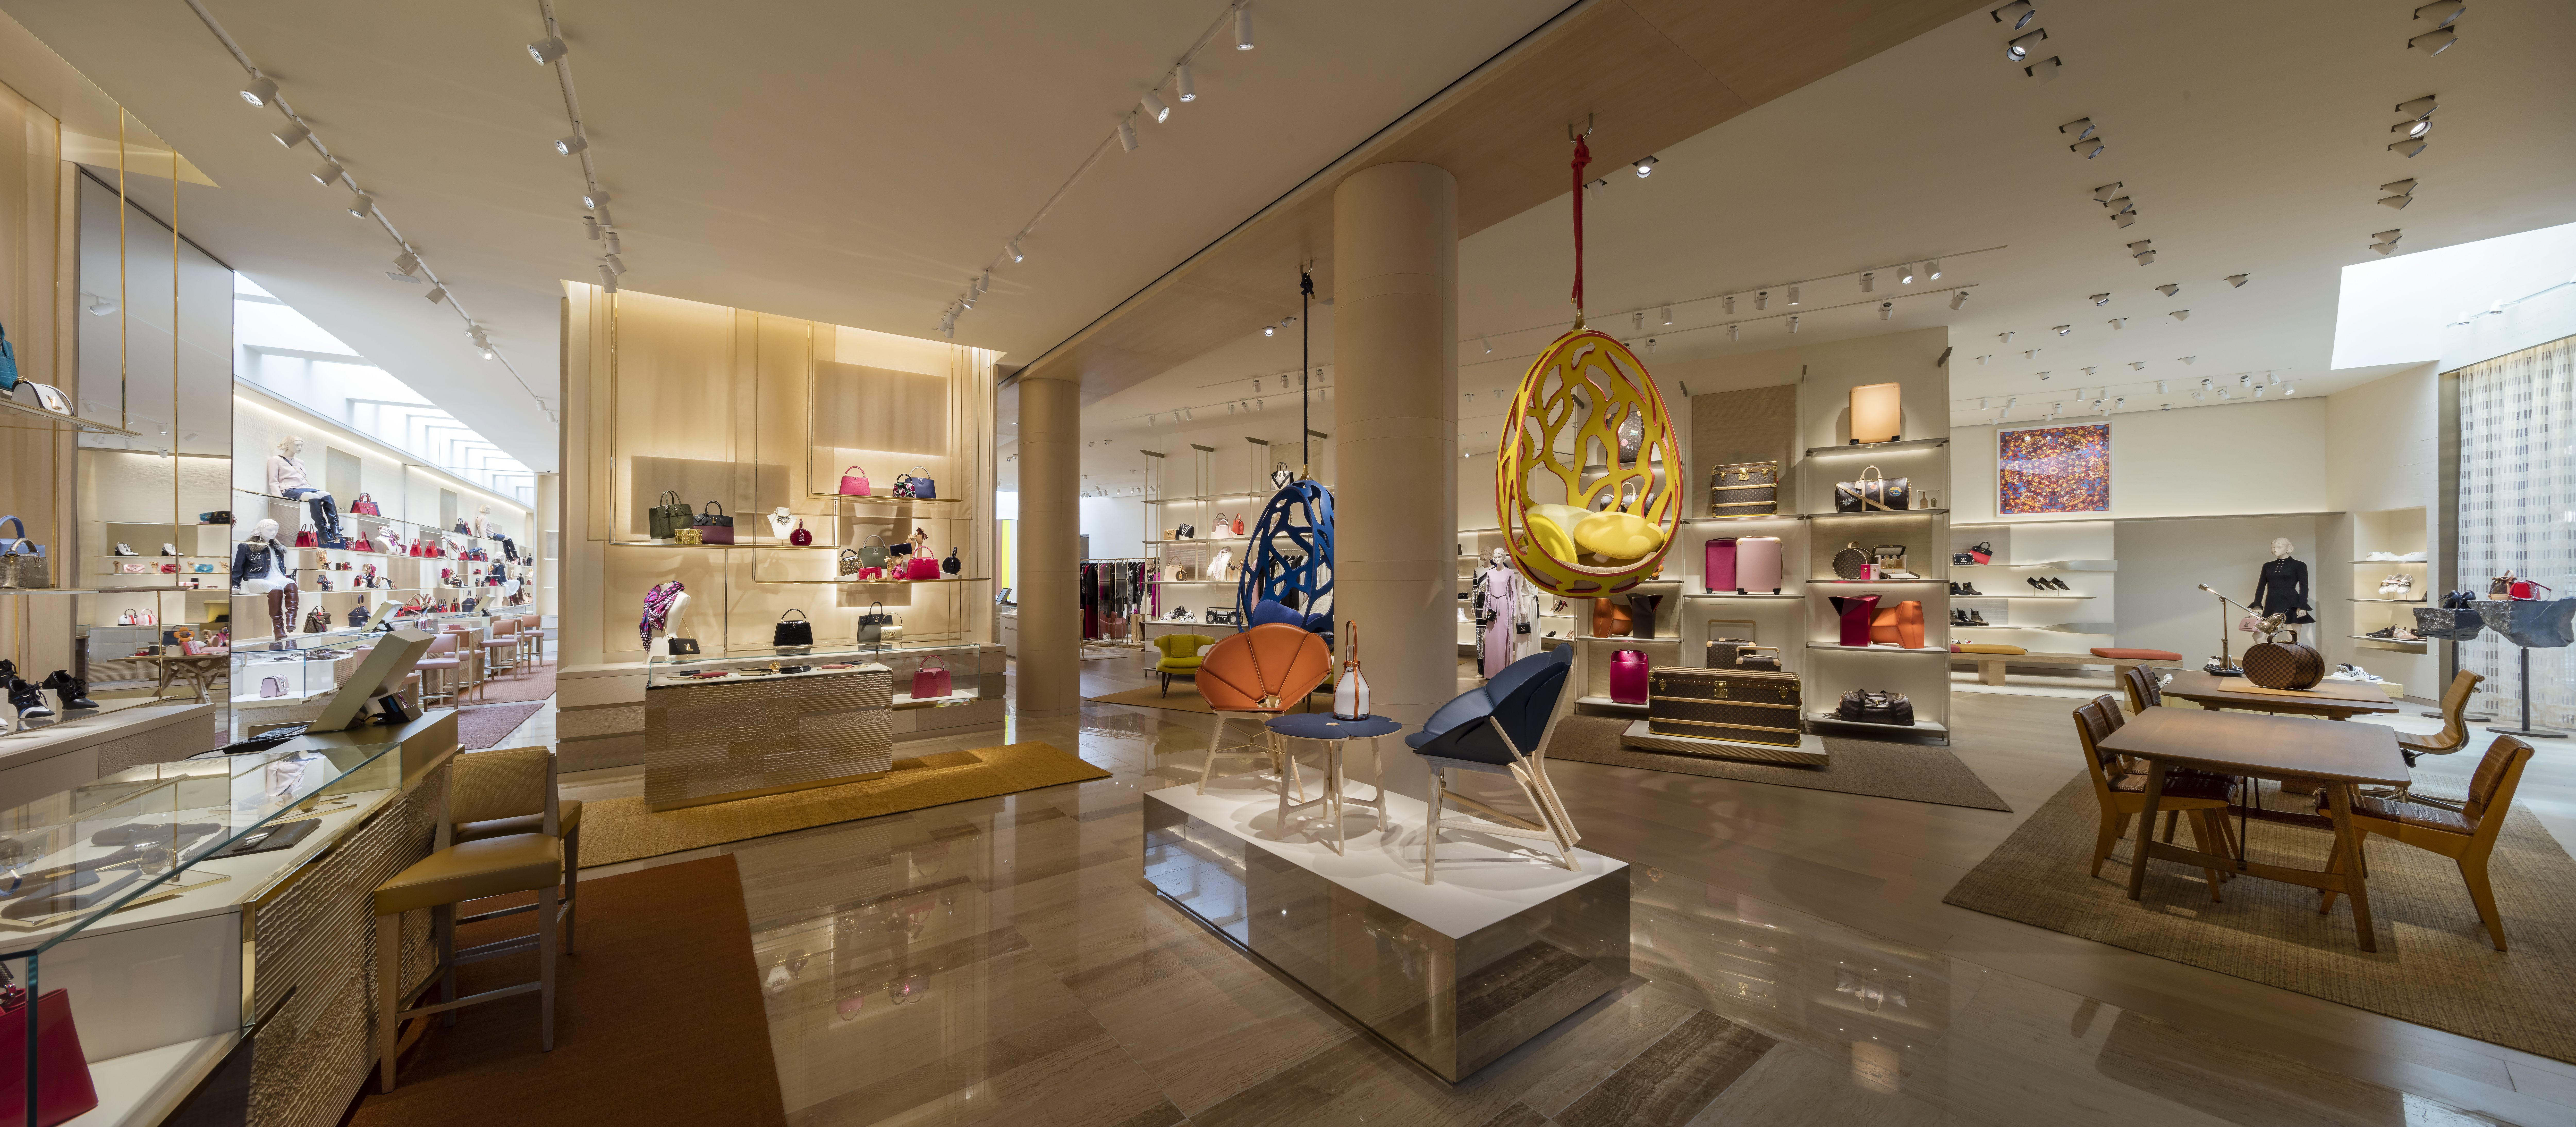 Louis Vuitton's new store at South Coast Plaza is spread across a single floor.